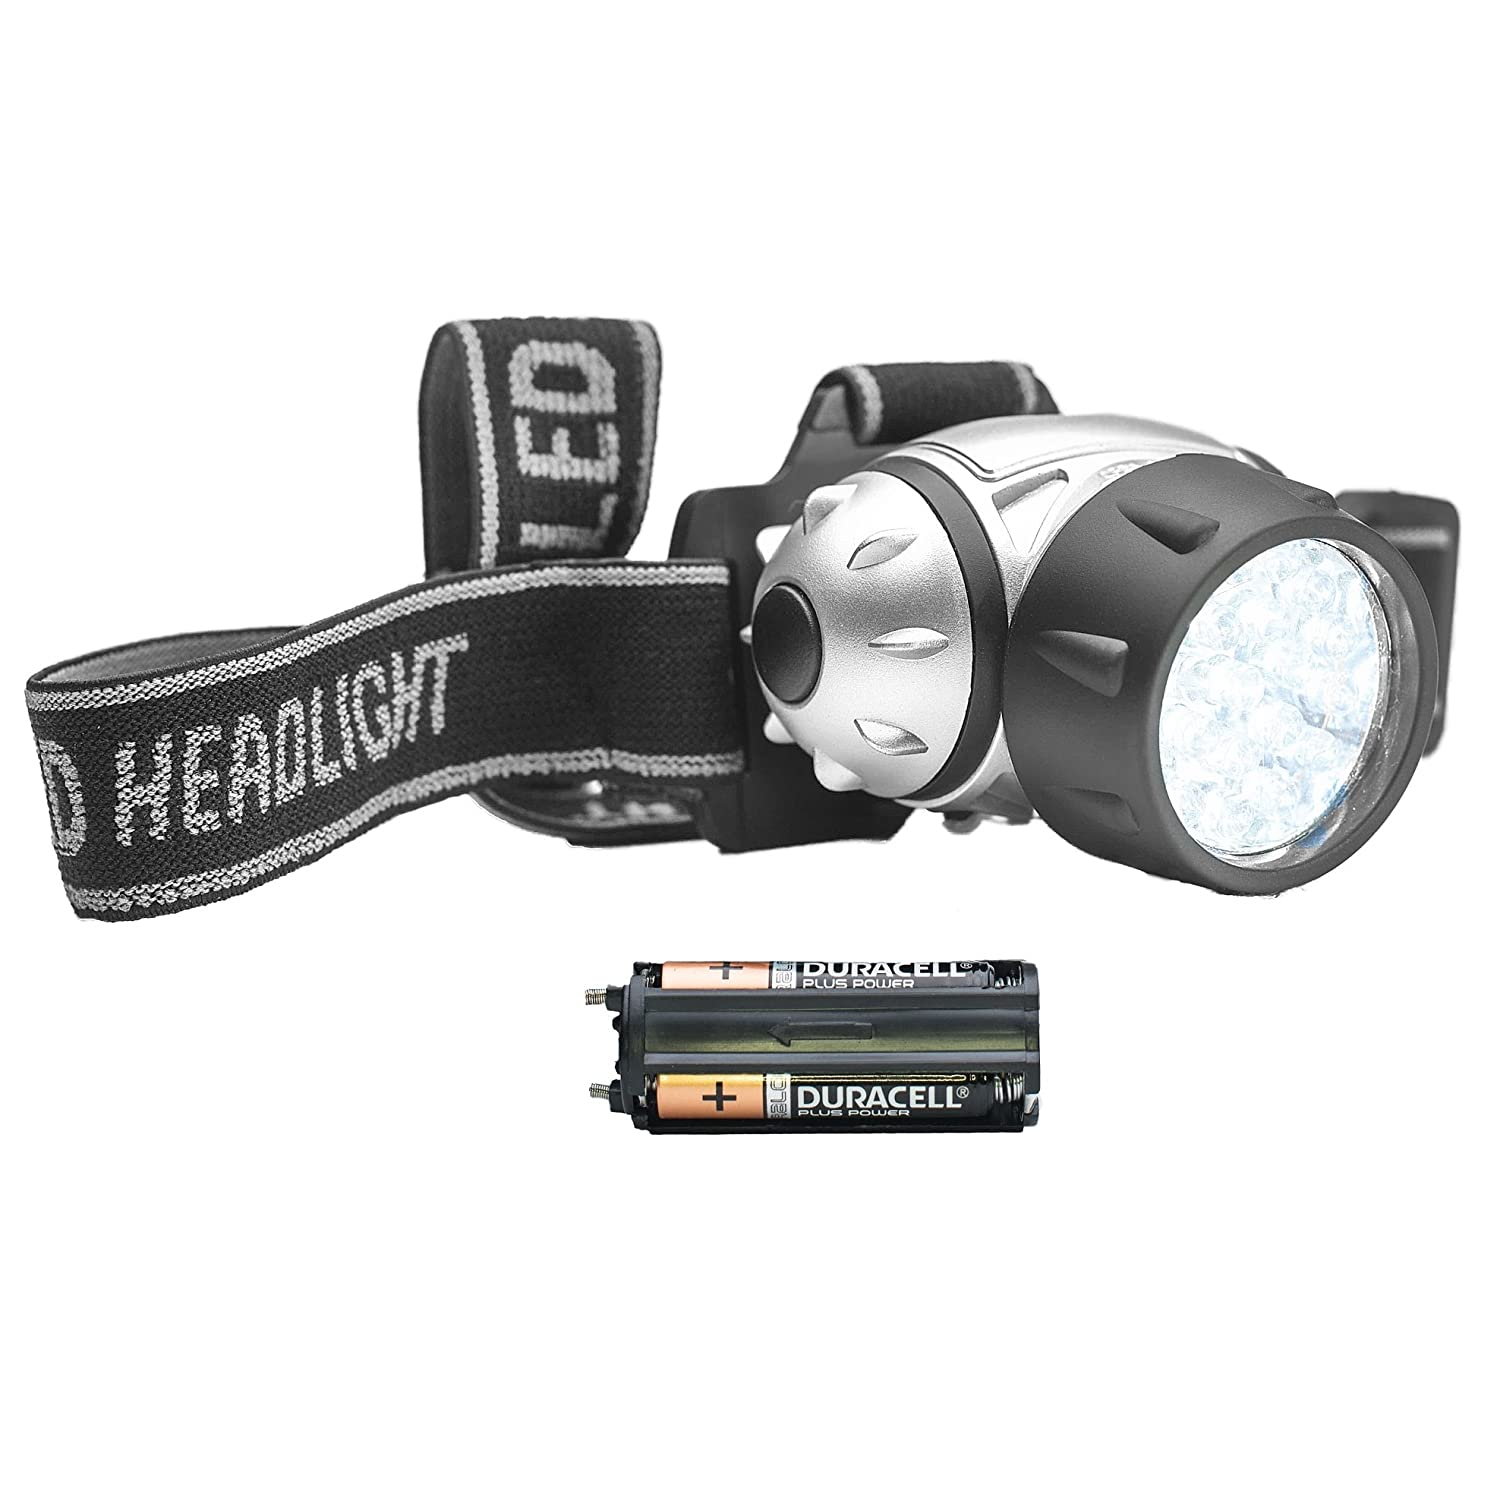 21 LED Headlamp with 4 Light Modes | Water-Resistant Outdoor Head Torch LED for Running, Camping, Cycling | Durable, Lightweight & Adjustable for Runners | by STAY Active - with Batteries (Silver)